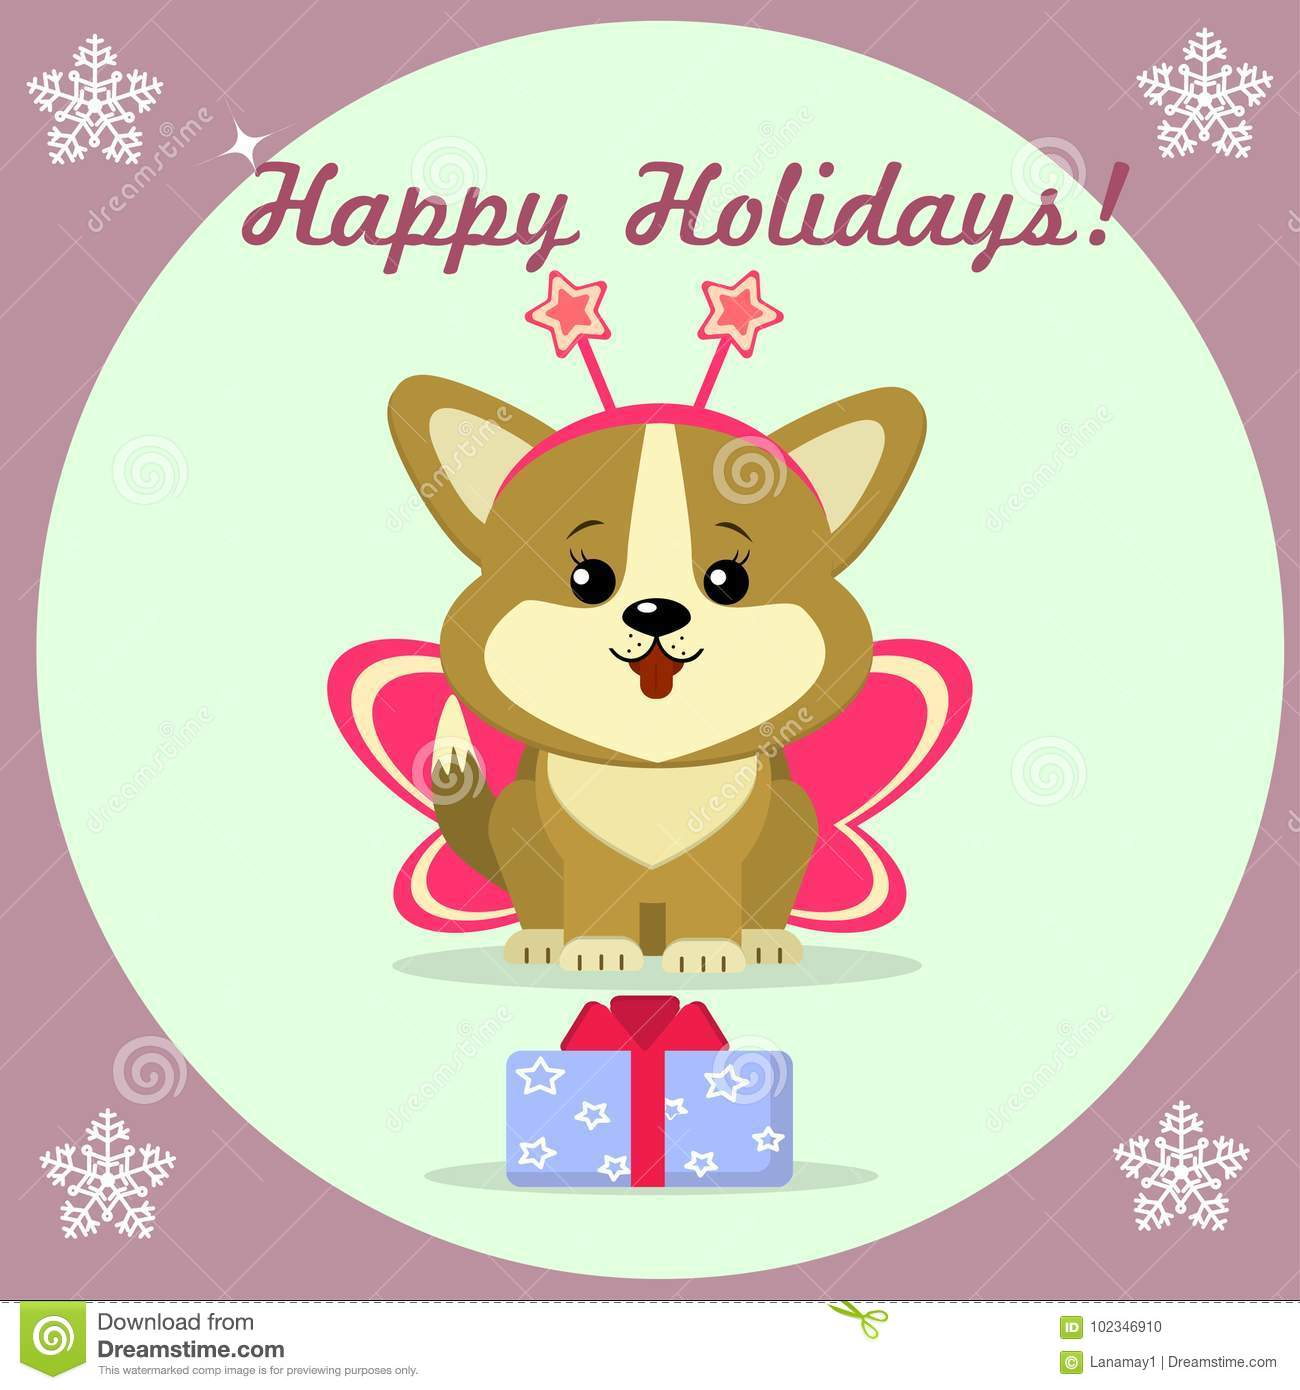 Christmas Card With Cute Puppy Corgi Stock Vector - Illustration of ...